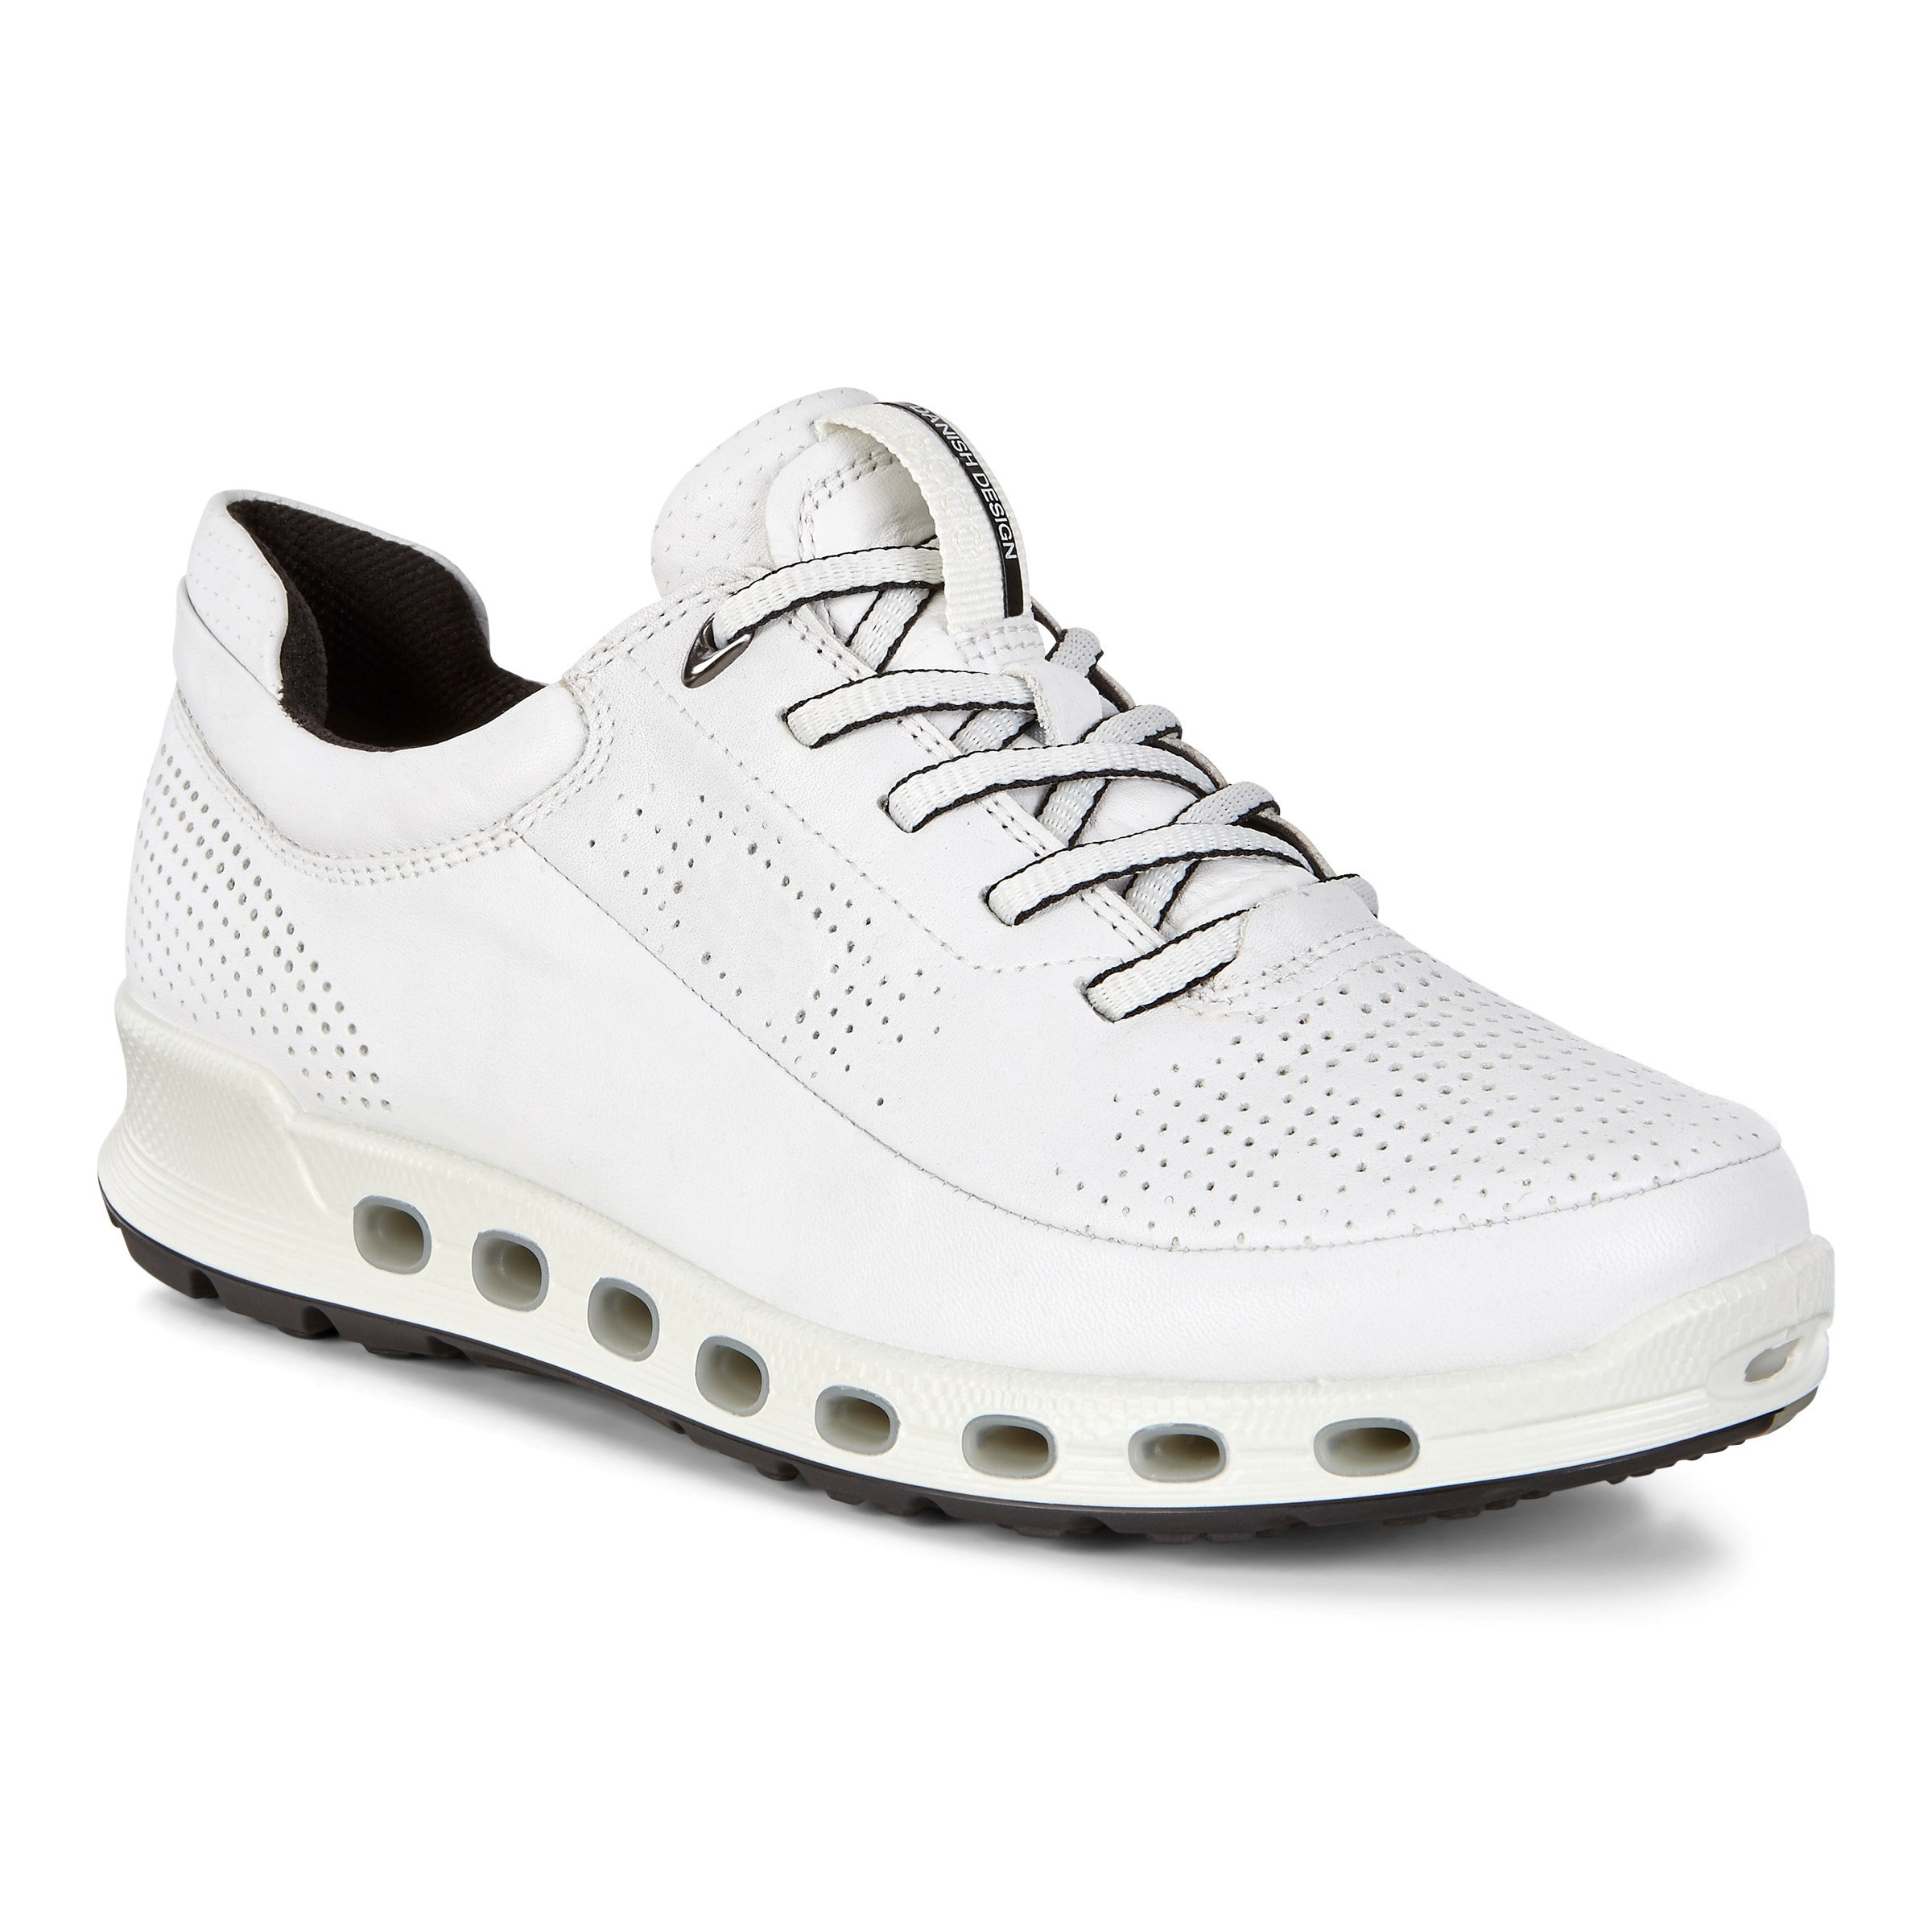 0ac5e9fdcc61e Ecco COOL 2.0 842513-01007 WHITE DRITTON G5 May 19